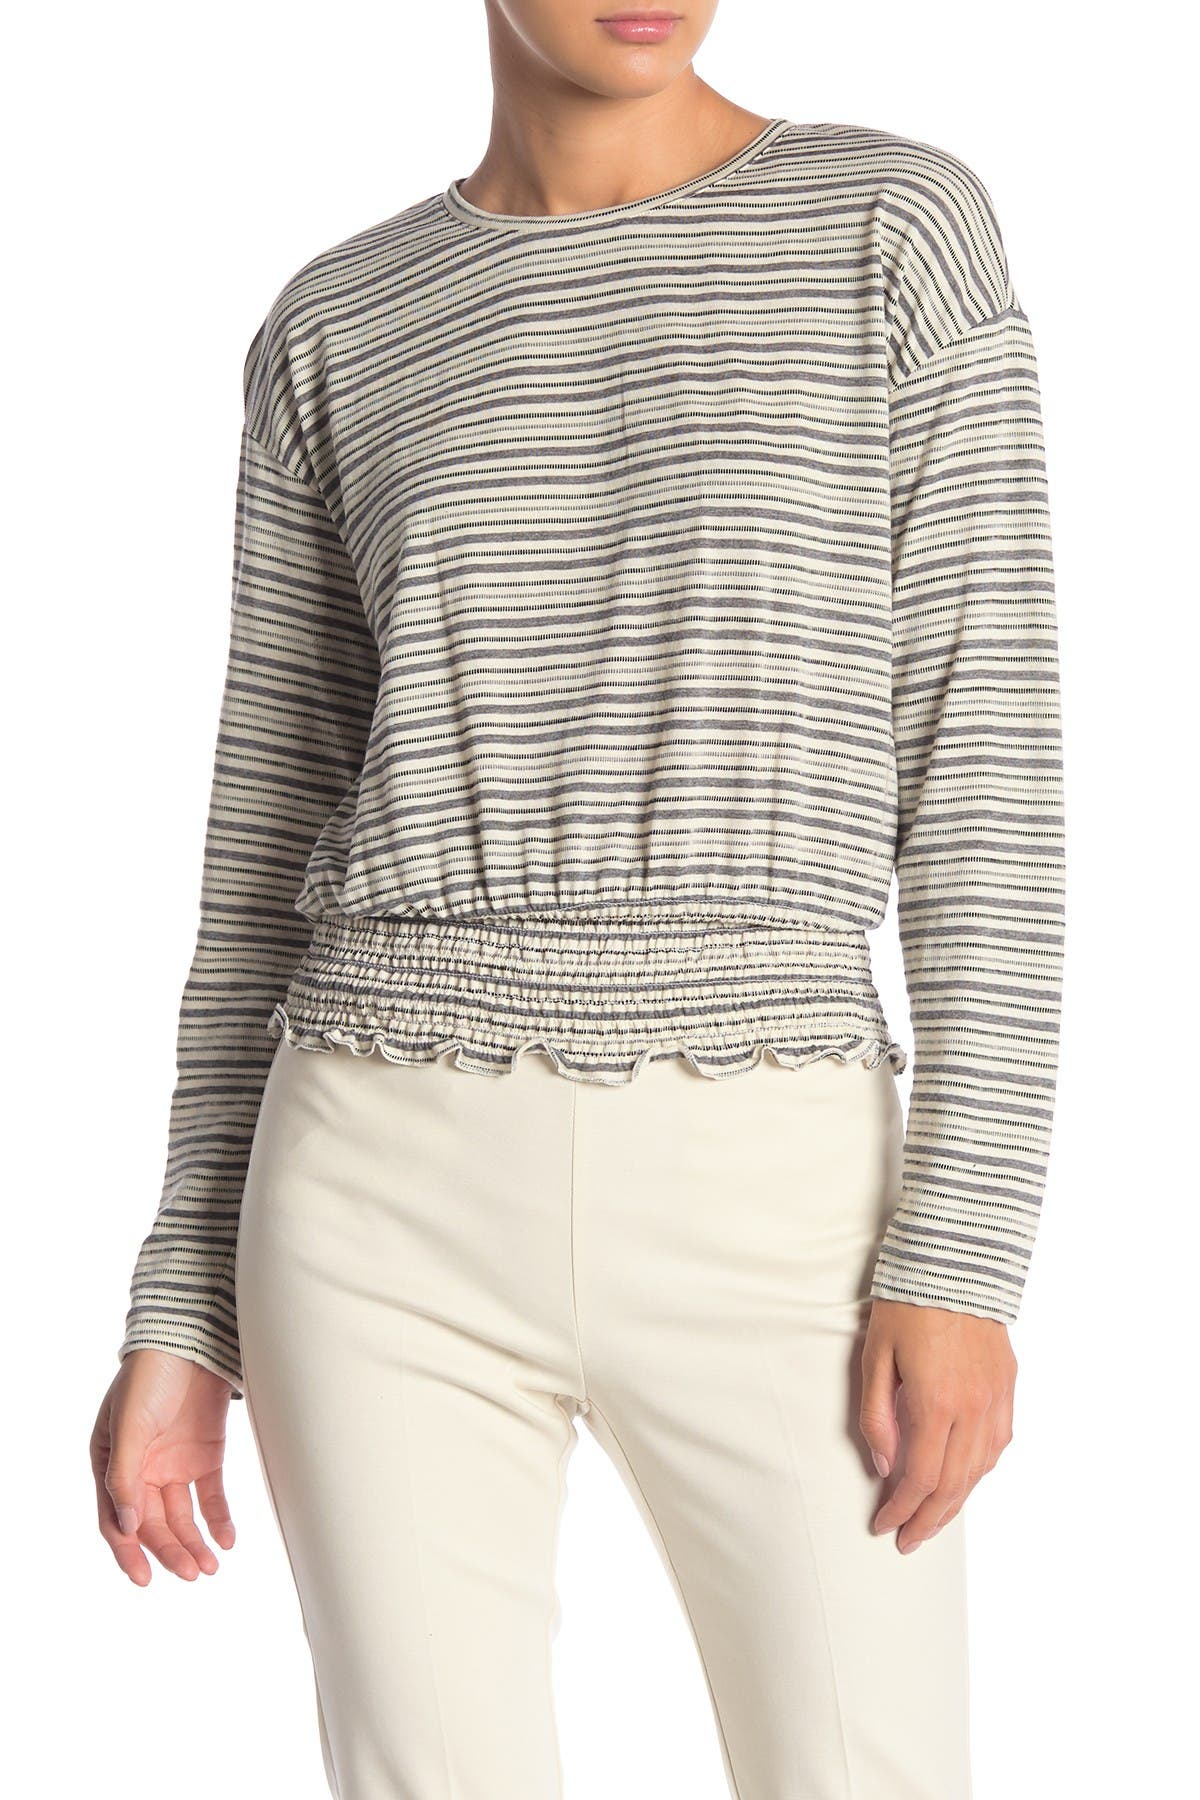 Image of Vince Camuto Long Sleeve Stripe Smocked Top